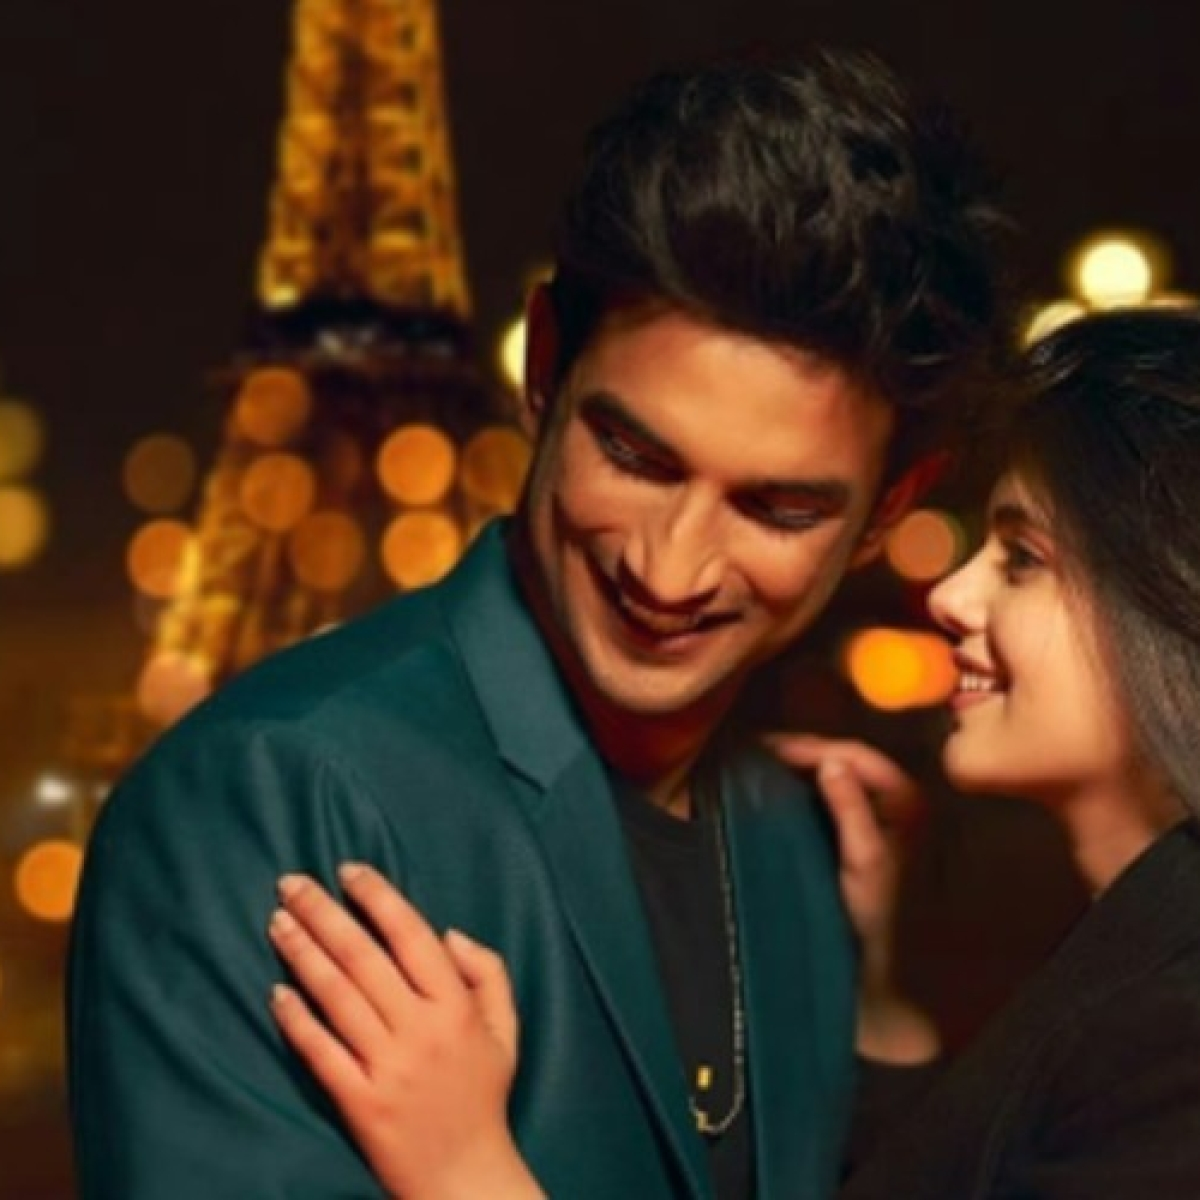 After recording statement, Sushant Singh Rajput's 'Dil Bechara' co-star Sanjana Sanghi pens cryptic ode to Mumbai